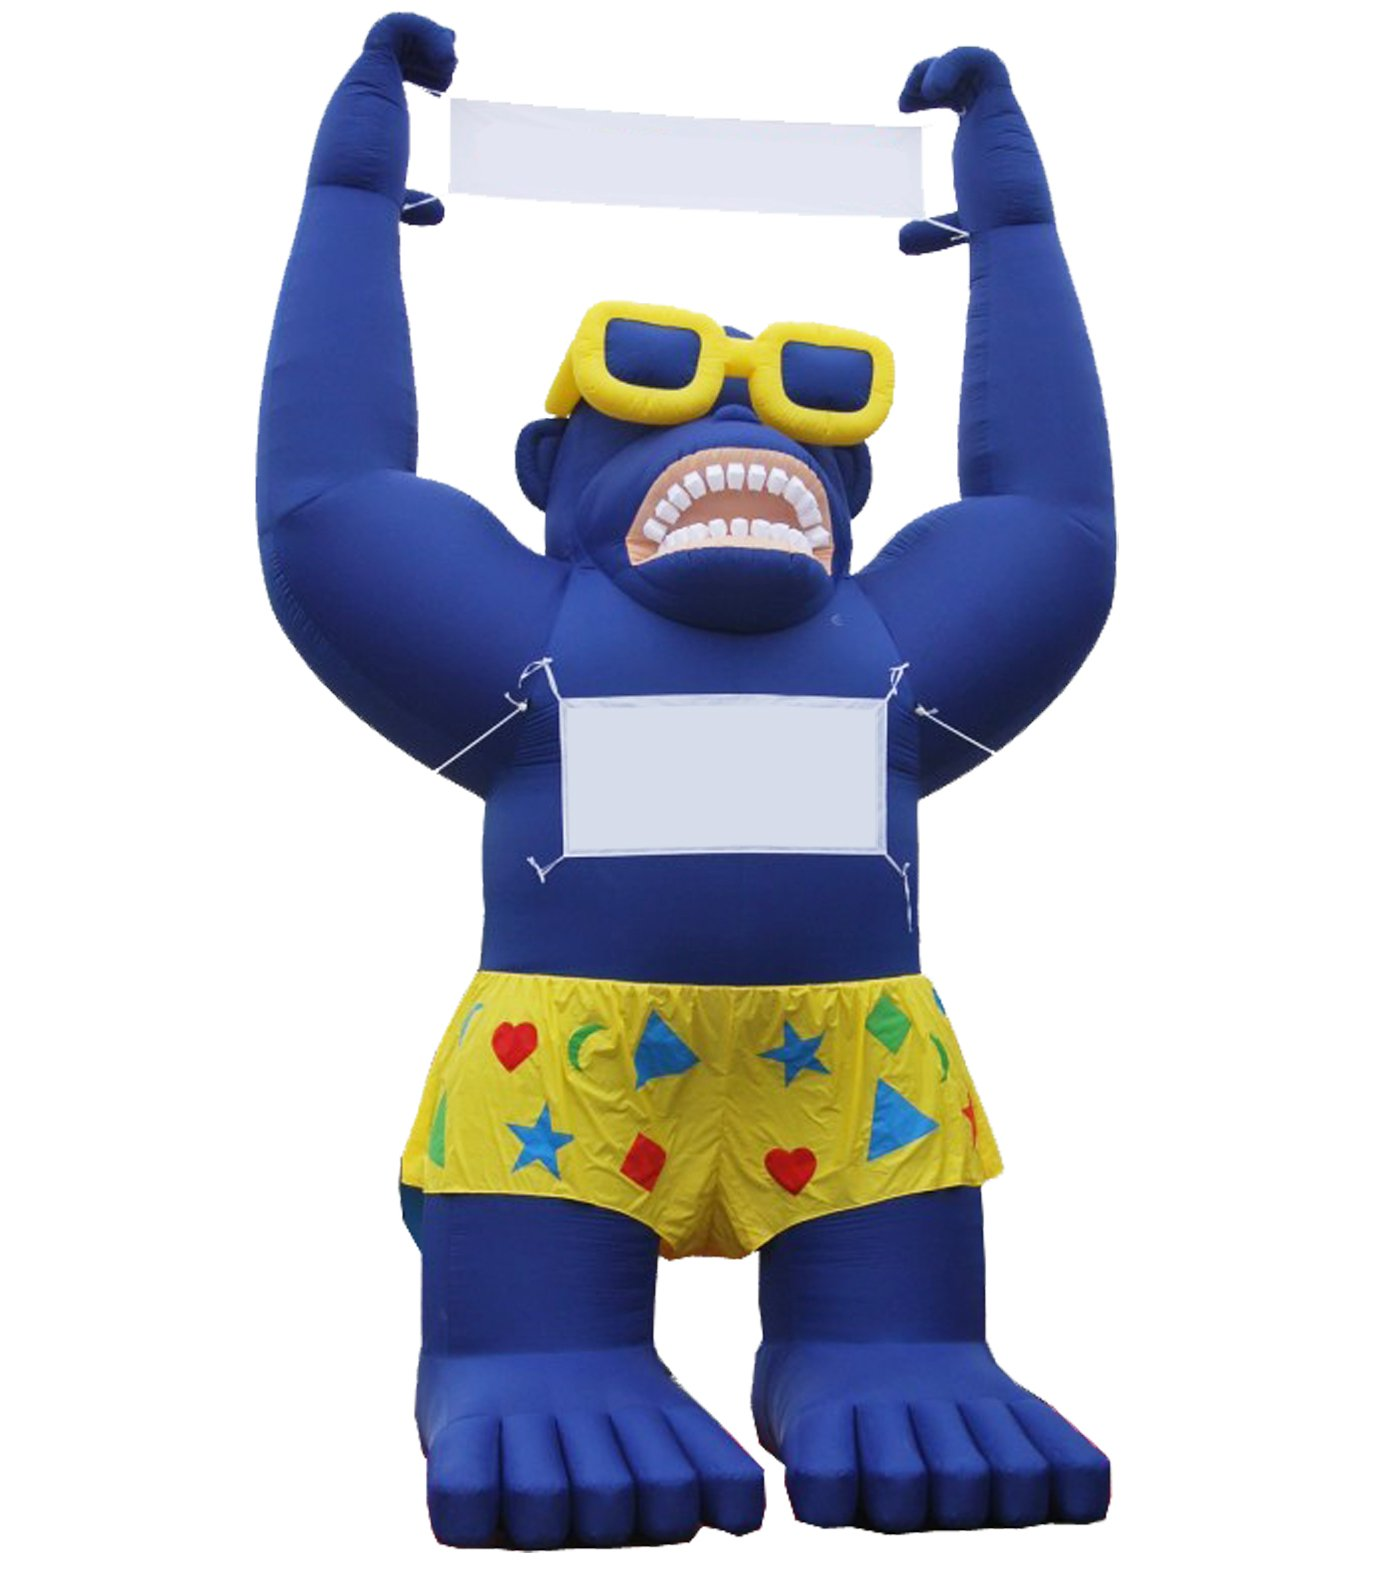 LookOurWay Giant Inflatable Advertising 20ft Tall Blue Sale Gorilla by LookOurWay (Image #1)